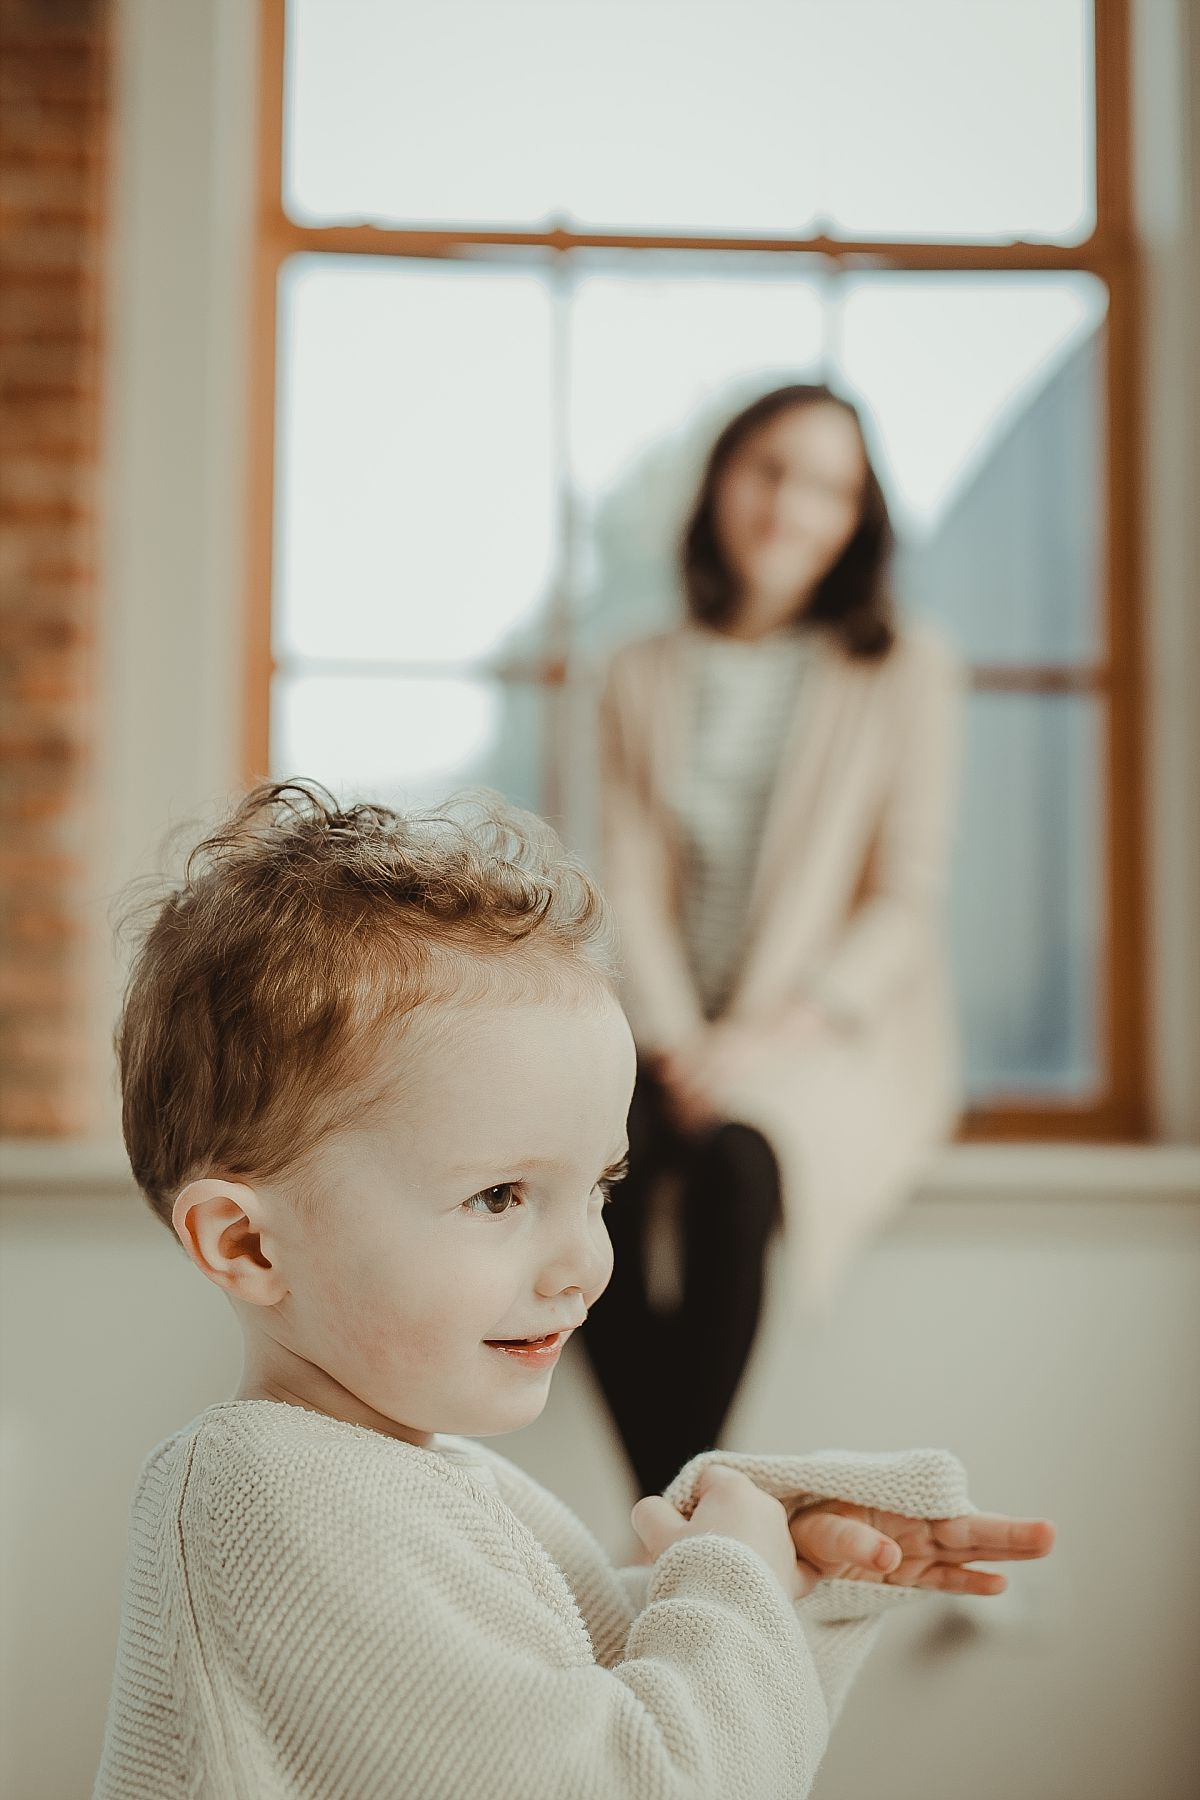 son looking at family dog with mom looking on with an adoring smile. capturing fun family images in your home